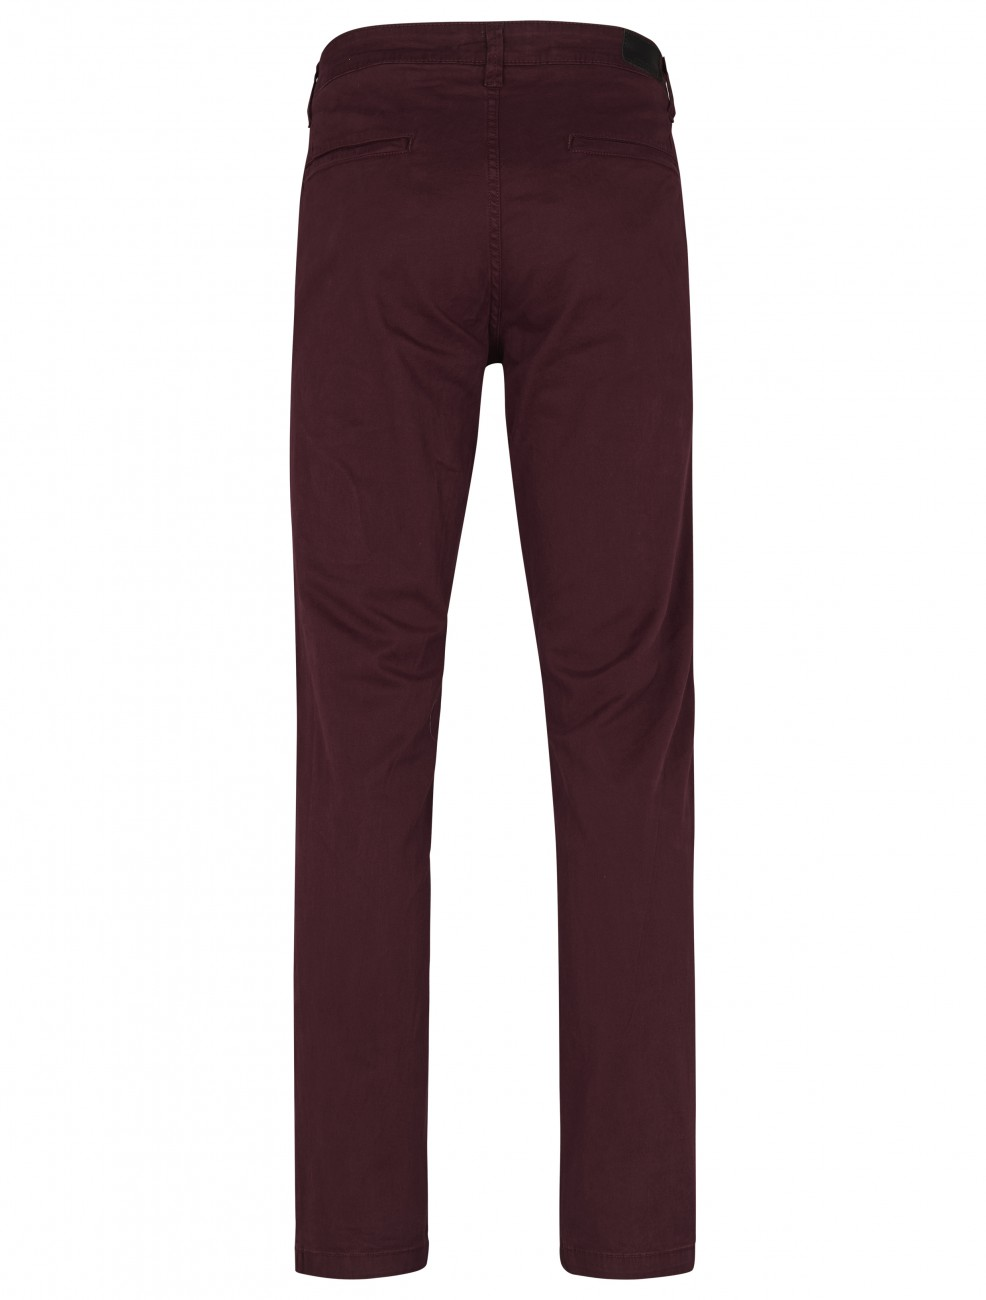 Shine Original Herren Stretch Chino Hose - Straight Fit - Rot - Dark Bordeaux